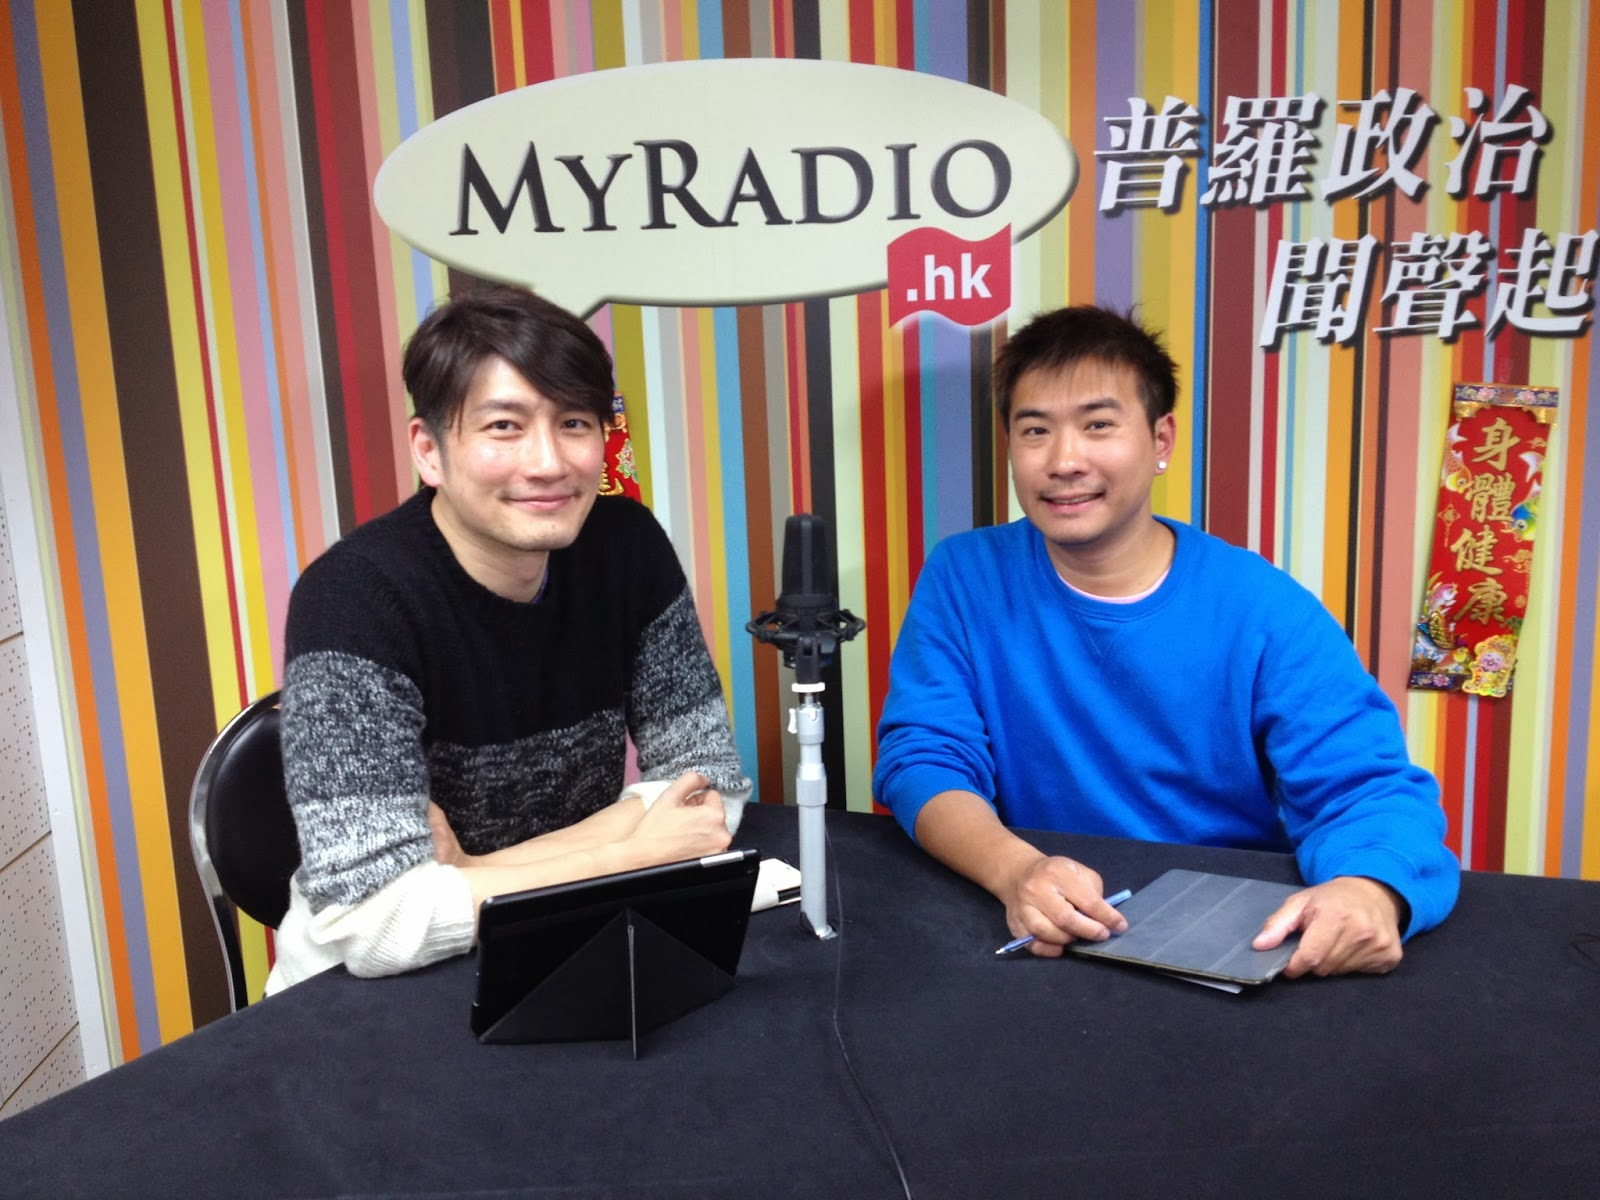 how to convert youtube to mp3 on iphone myradio hk 台務網誌 男人瘋 140214 ep20 5593